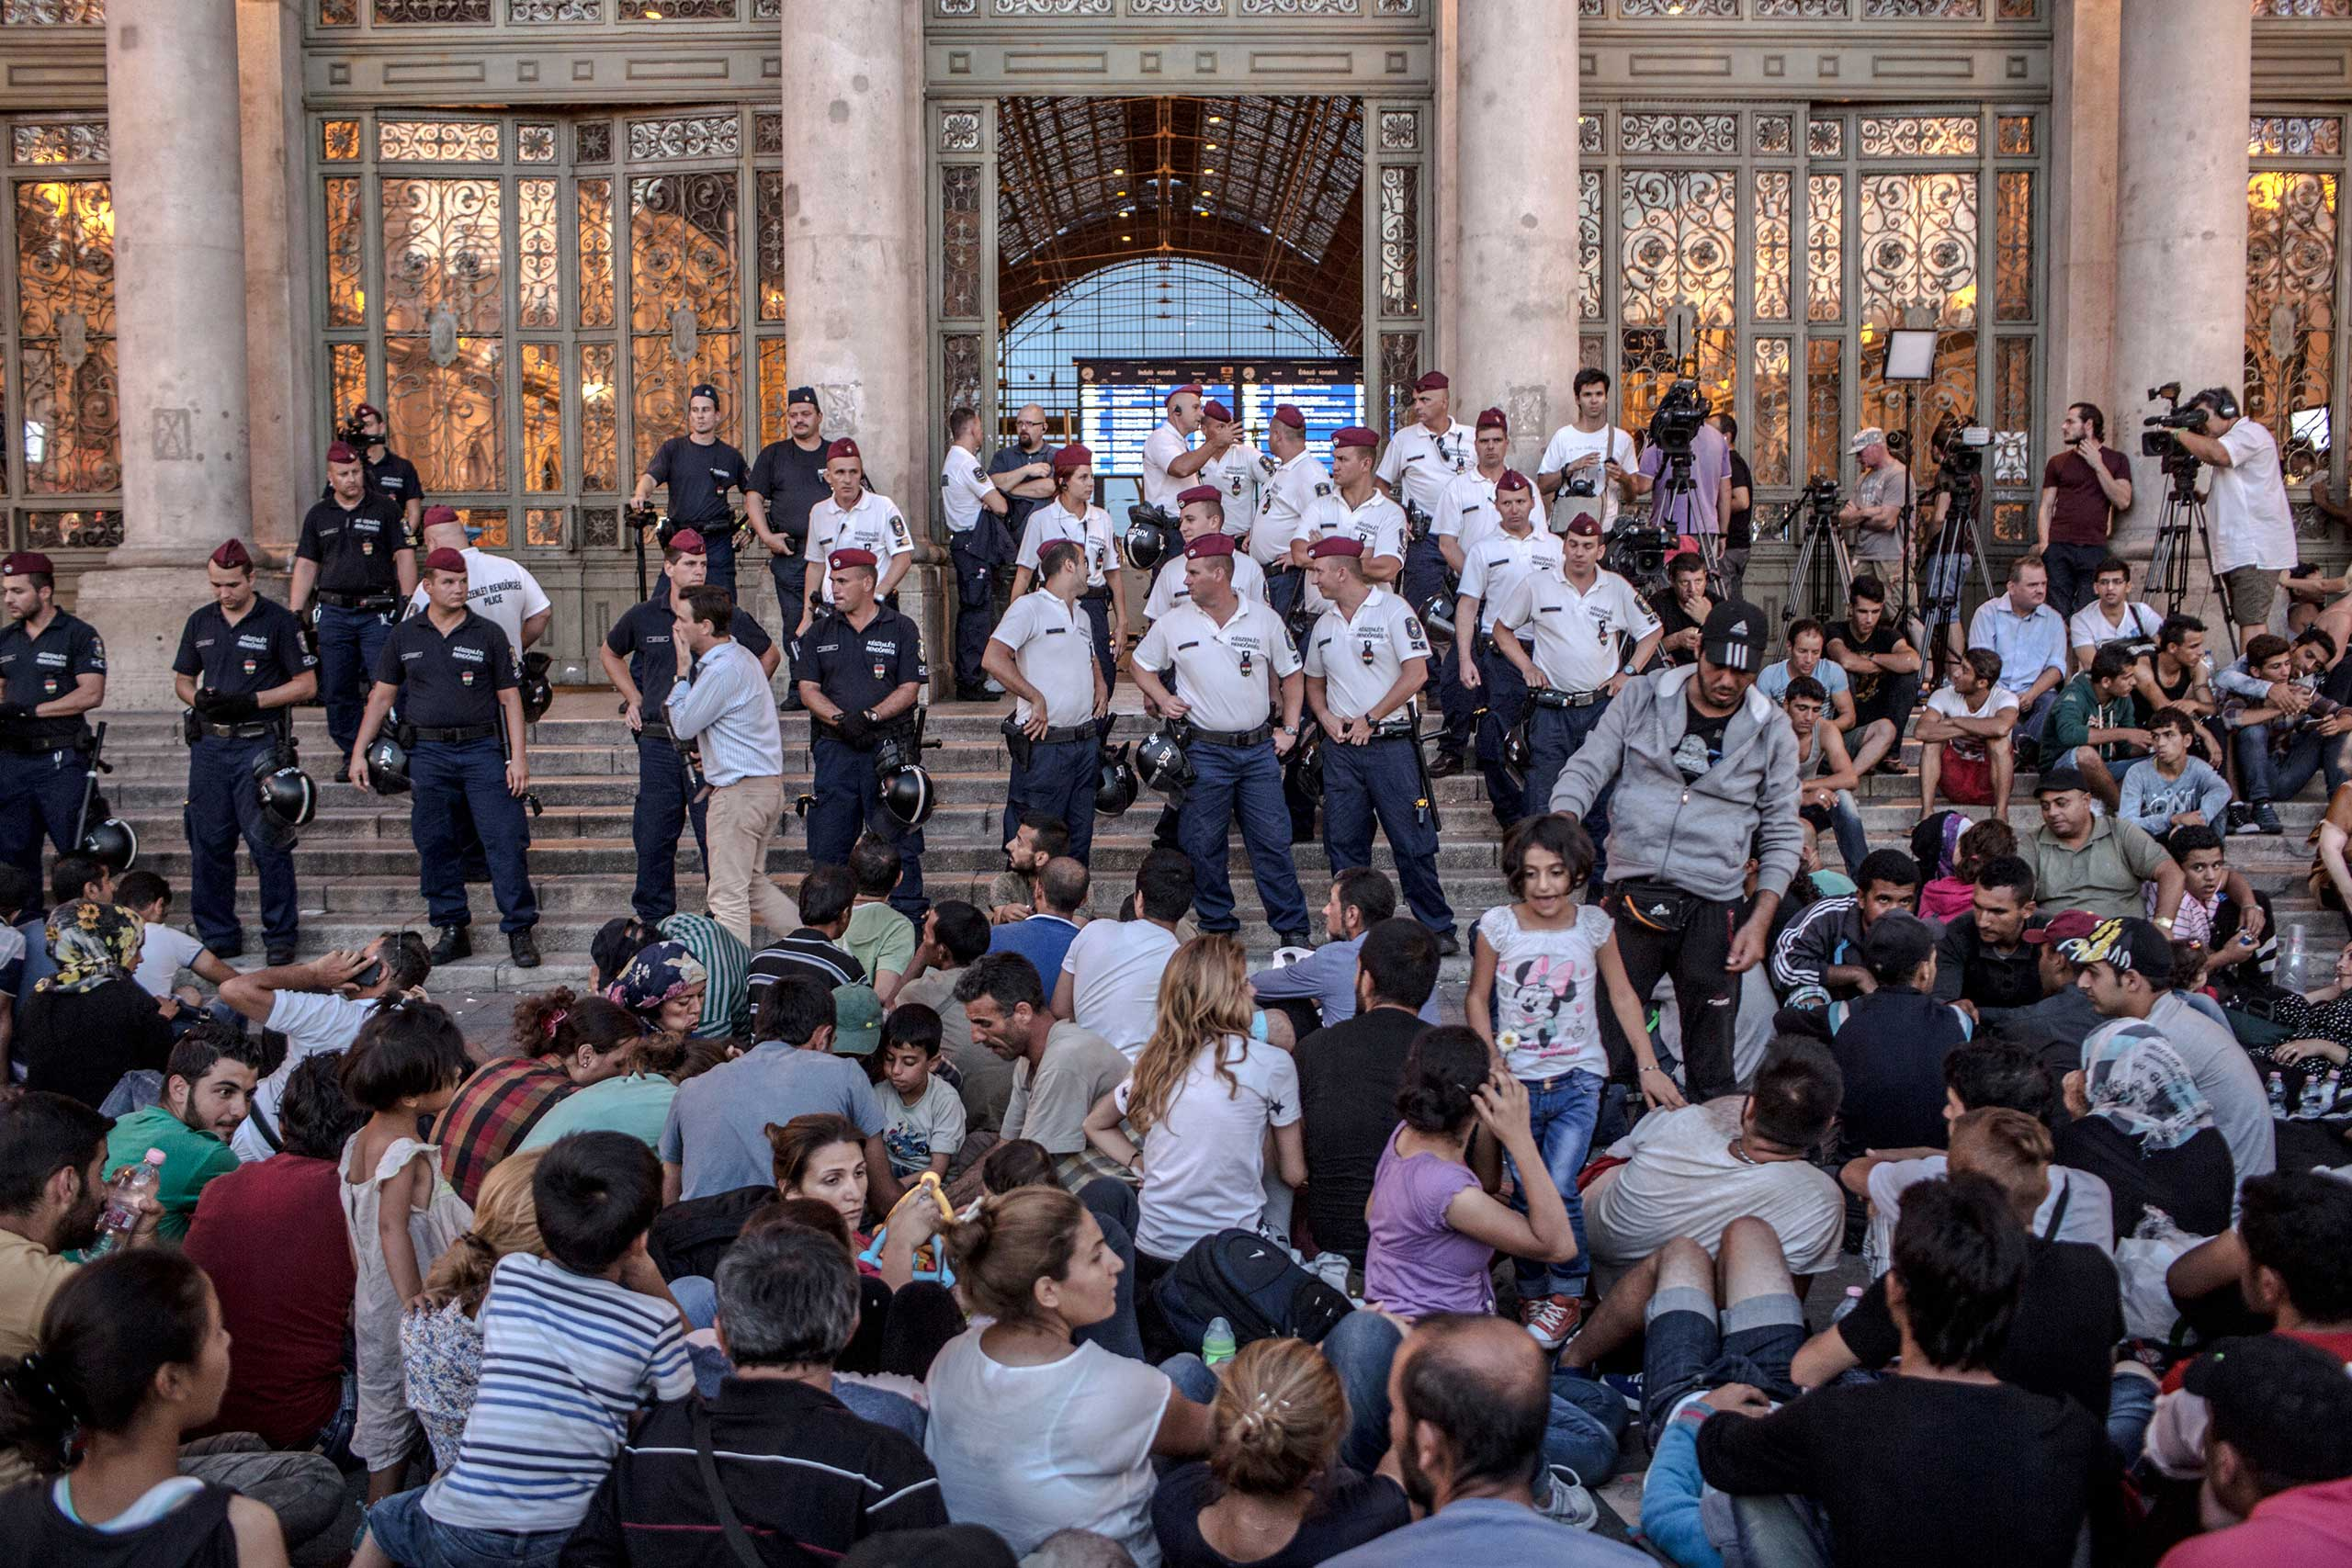 Human Rights Watch: Desperate Journey: Refugees and Asylum Seekers in HungaryHungarian police stand in front of the entrance to the Keleti train station in Budapest, barring entry to the many refugees and asylum seekers who wait to board trains to Germany, on Sept. 1, 2015.